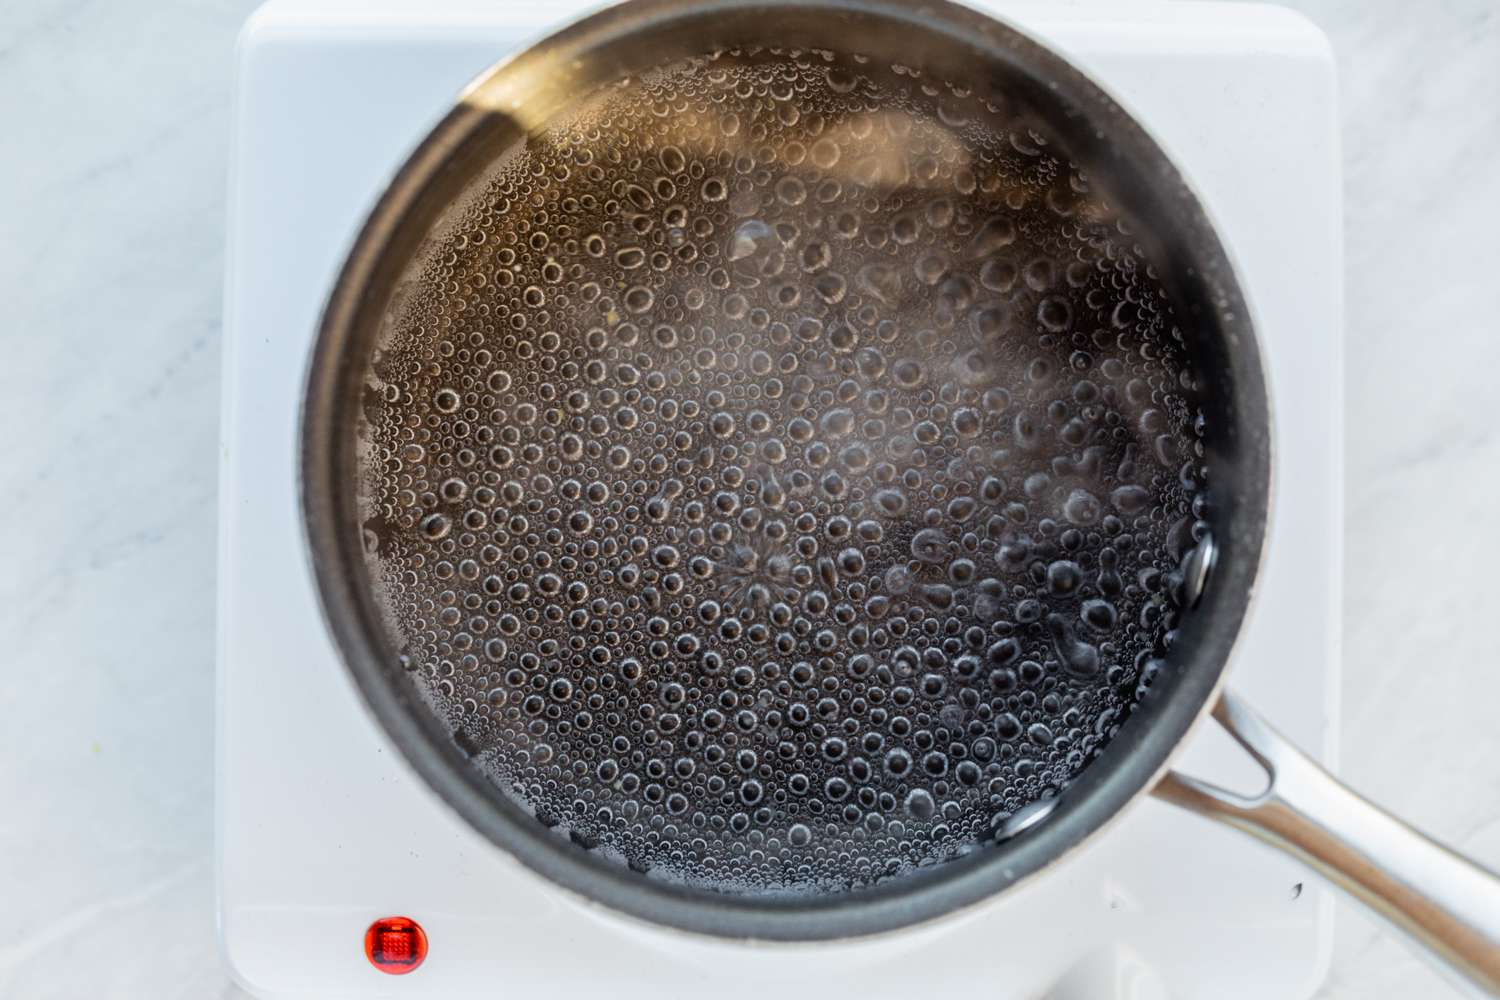 boiling water in a pot